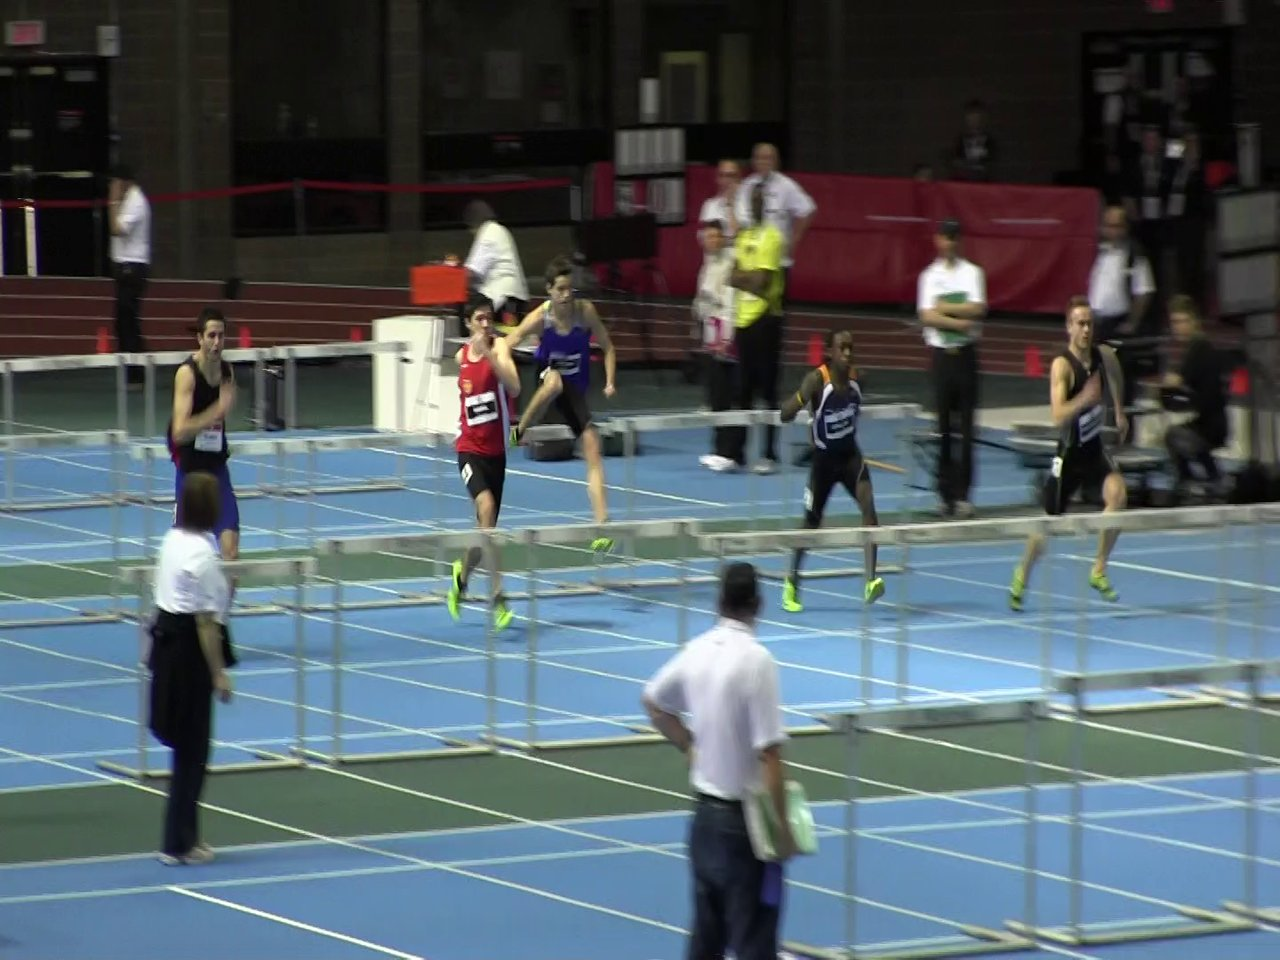 2014-ac-indoor-mens-pent-60mh-youth